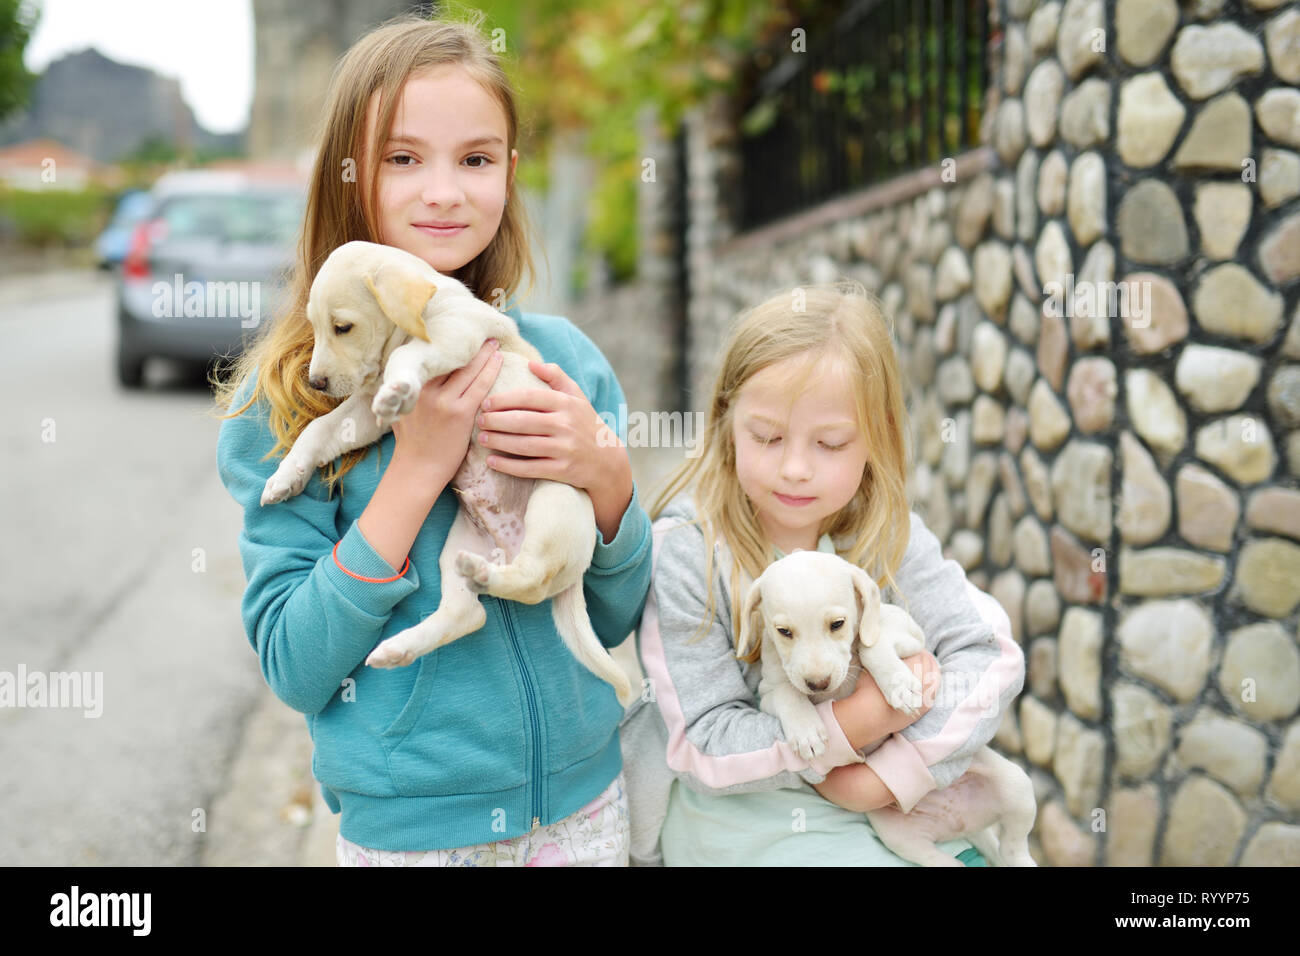 Two Cute Young Sisters Holding Small White Puppies Outdoors Kids Playing With Baby Dogs On Summer Day Domestic Animals And Pets For Children Stock Photo Alamy